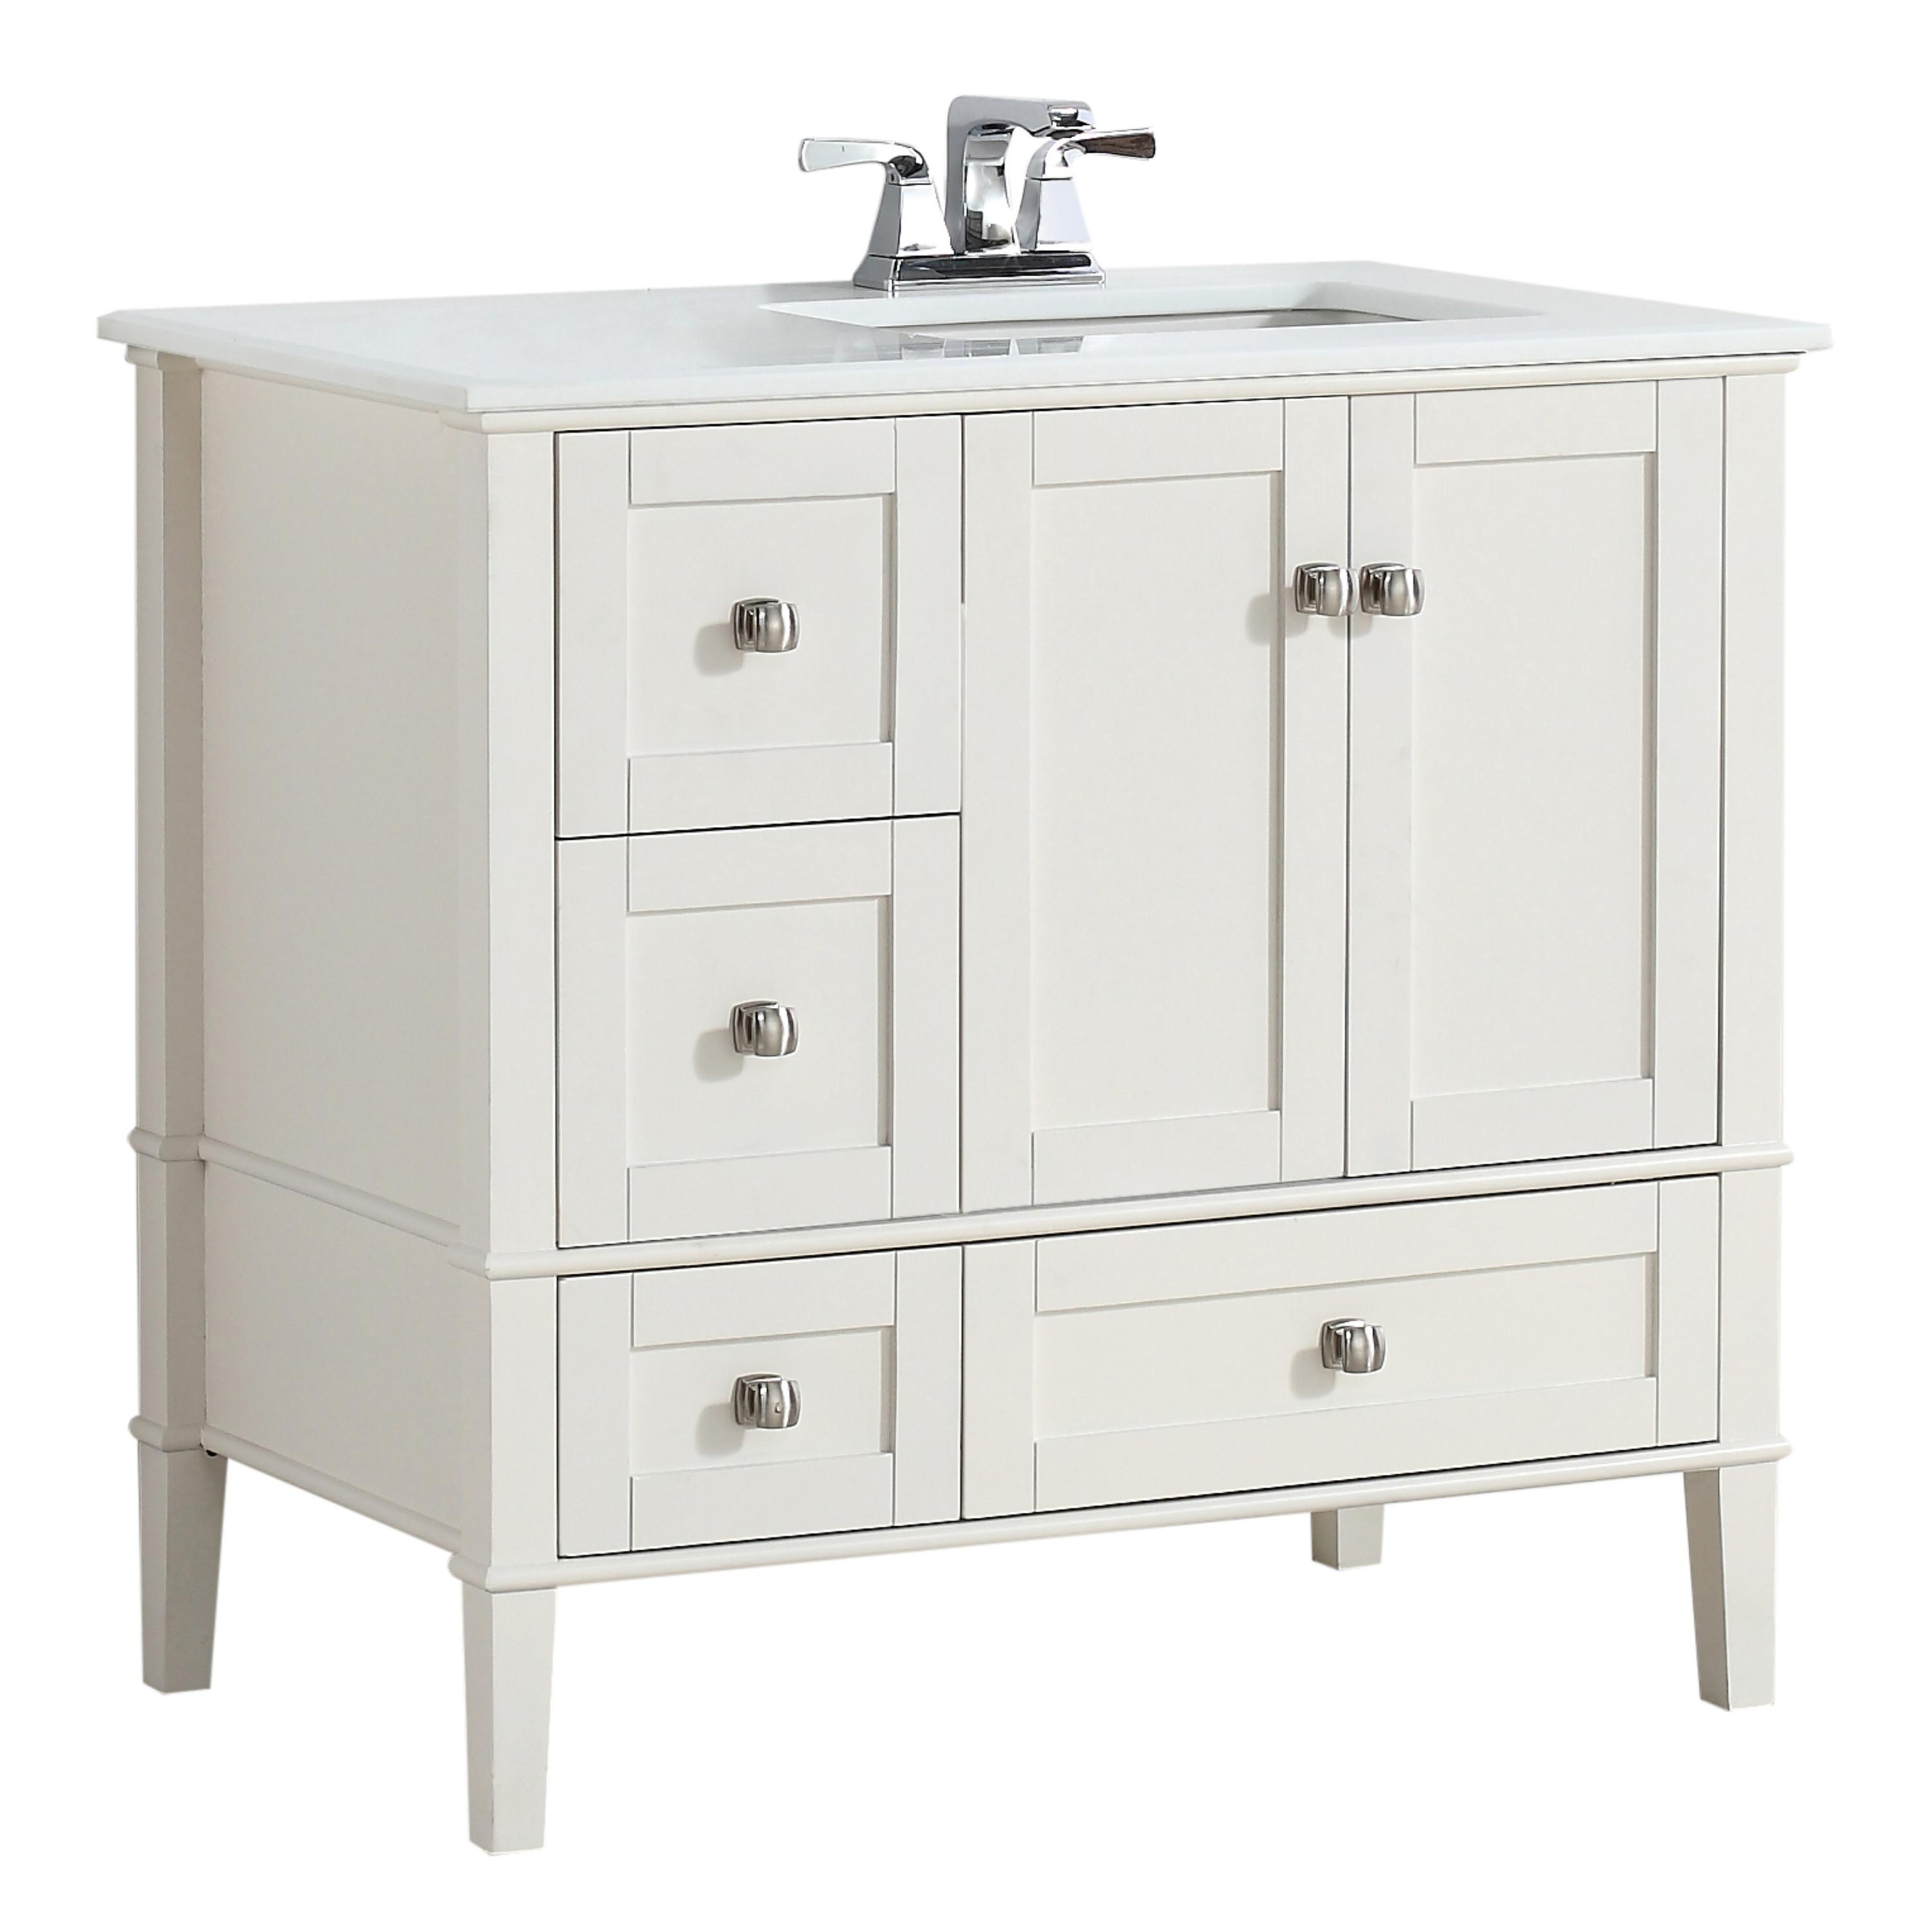 Offset Sink Vanity Top : ... Offset Bath Vanity with White Quartz Marble Top, Soft White - - Amazon